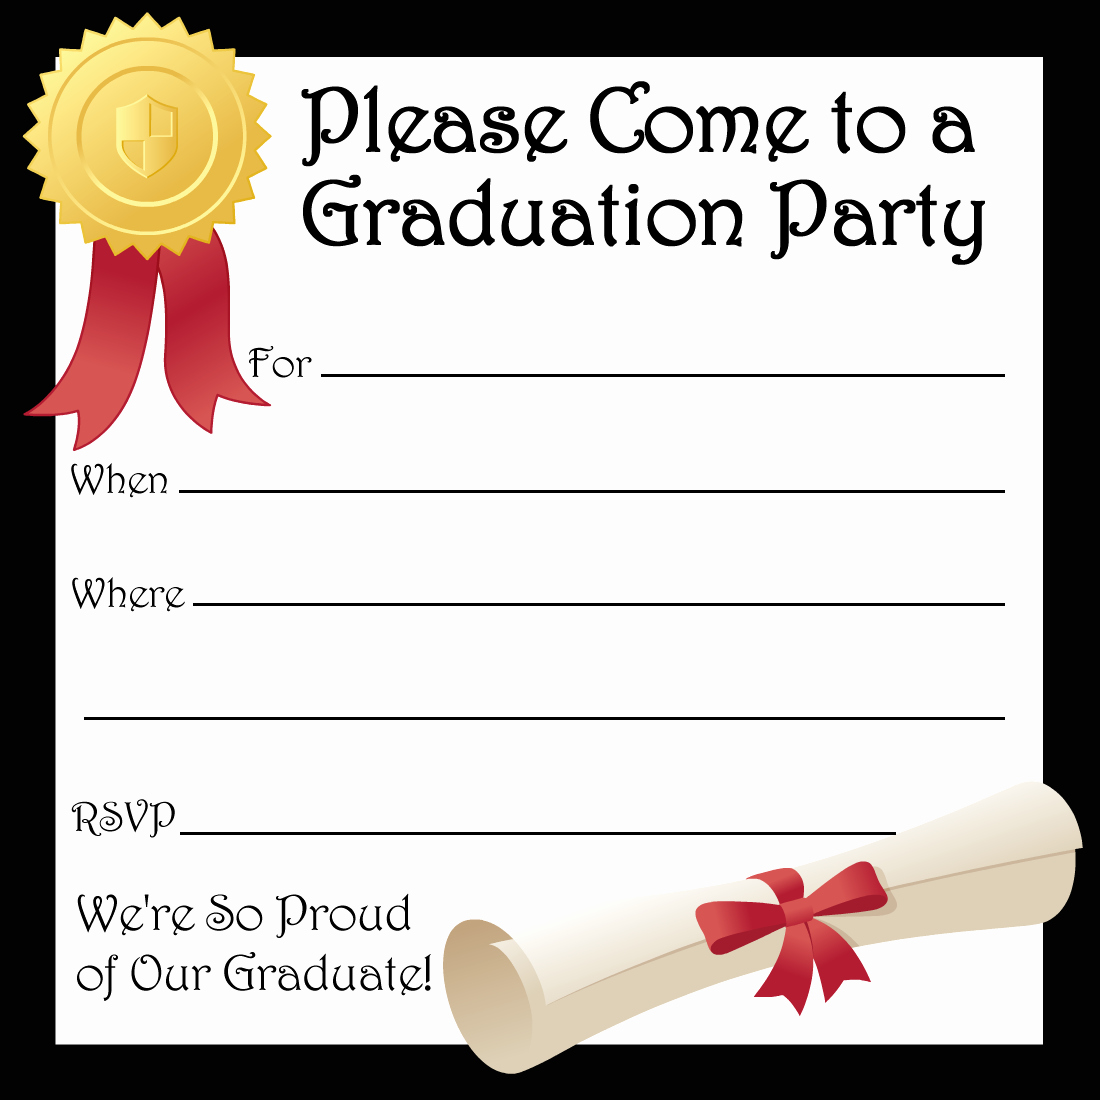 Graduation Party Invitations Templates Fresh Free Printable Graduation Party Invitations